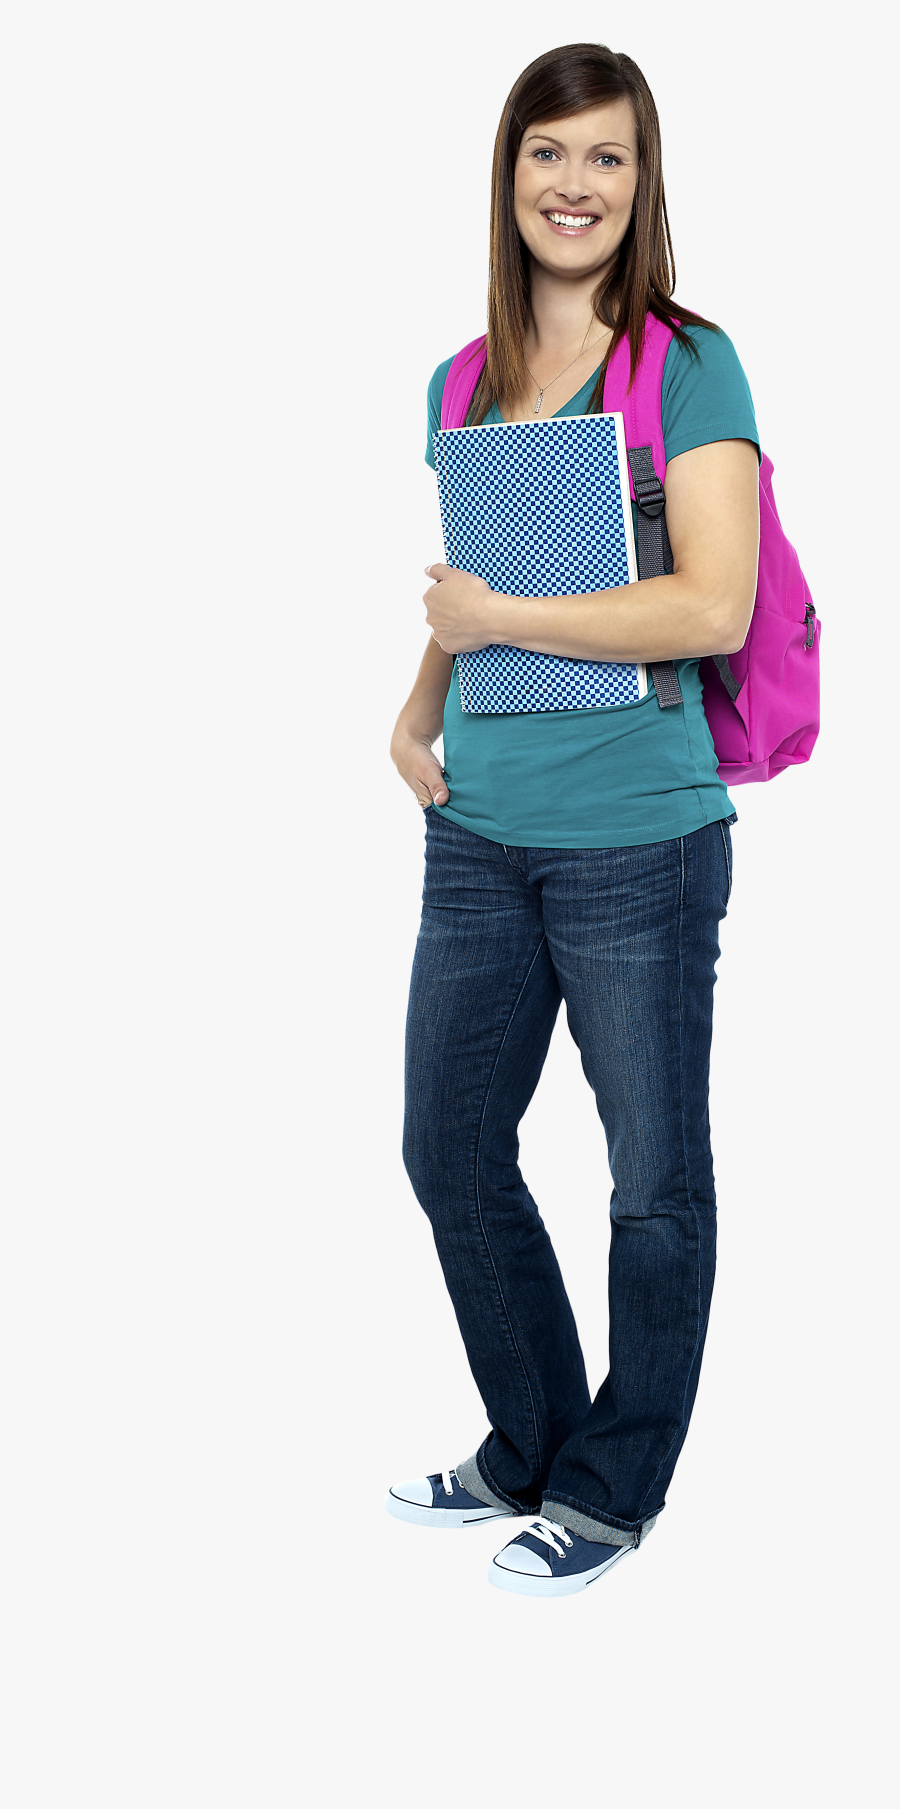 Young Girl Student Png Image - Full Png Student, Transparent Clipart